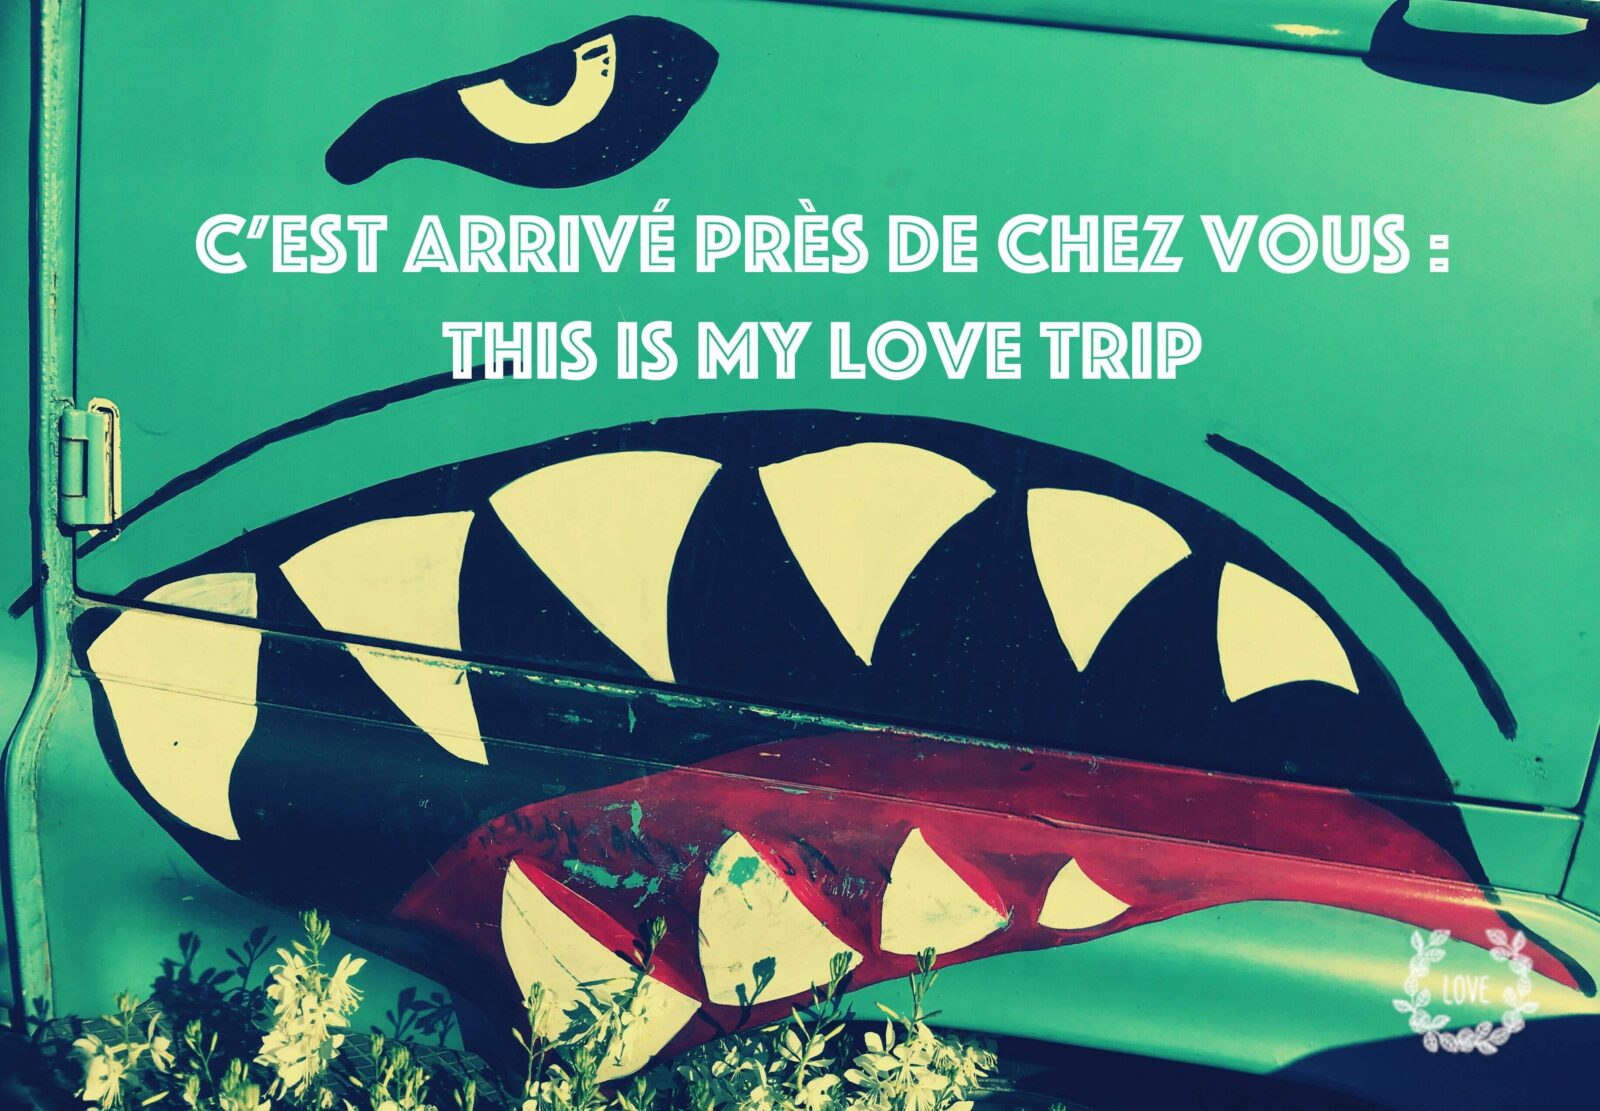 This is my love trip !